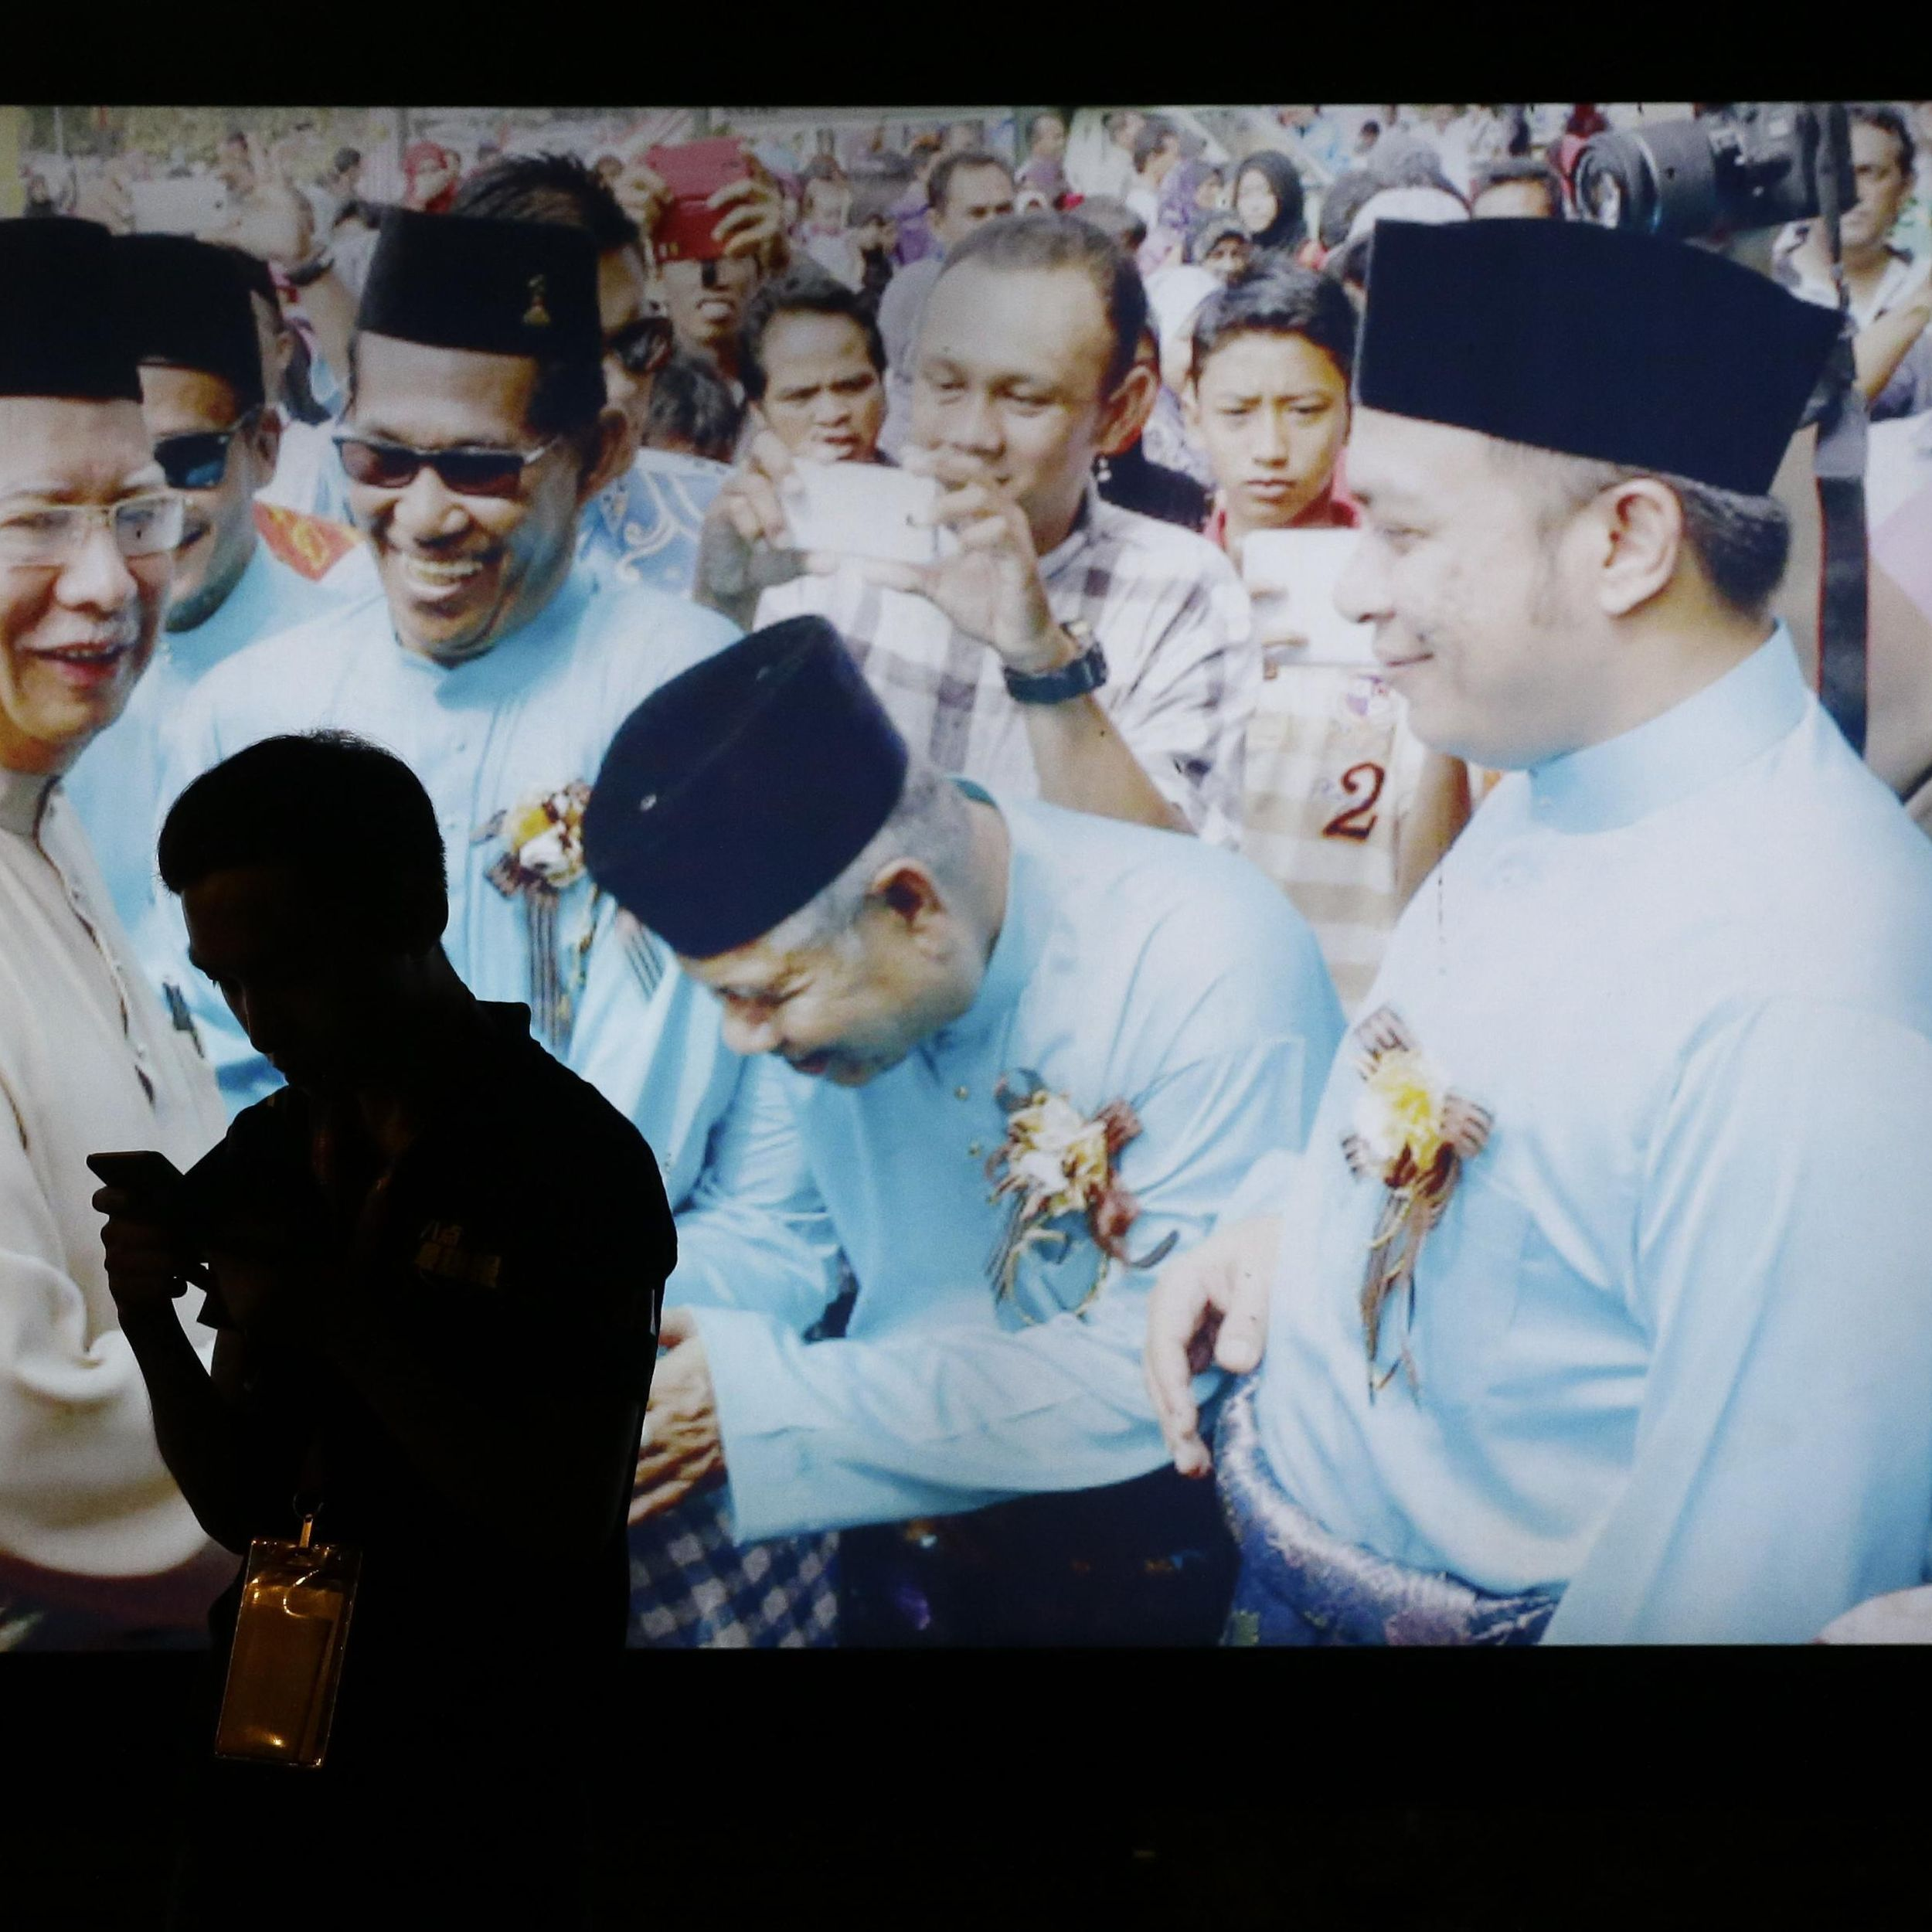 Opposition Win Ends Malaysia Party S 60 Year Hold On Power The Spokesman Review